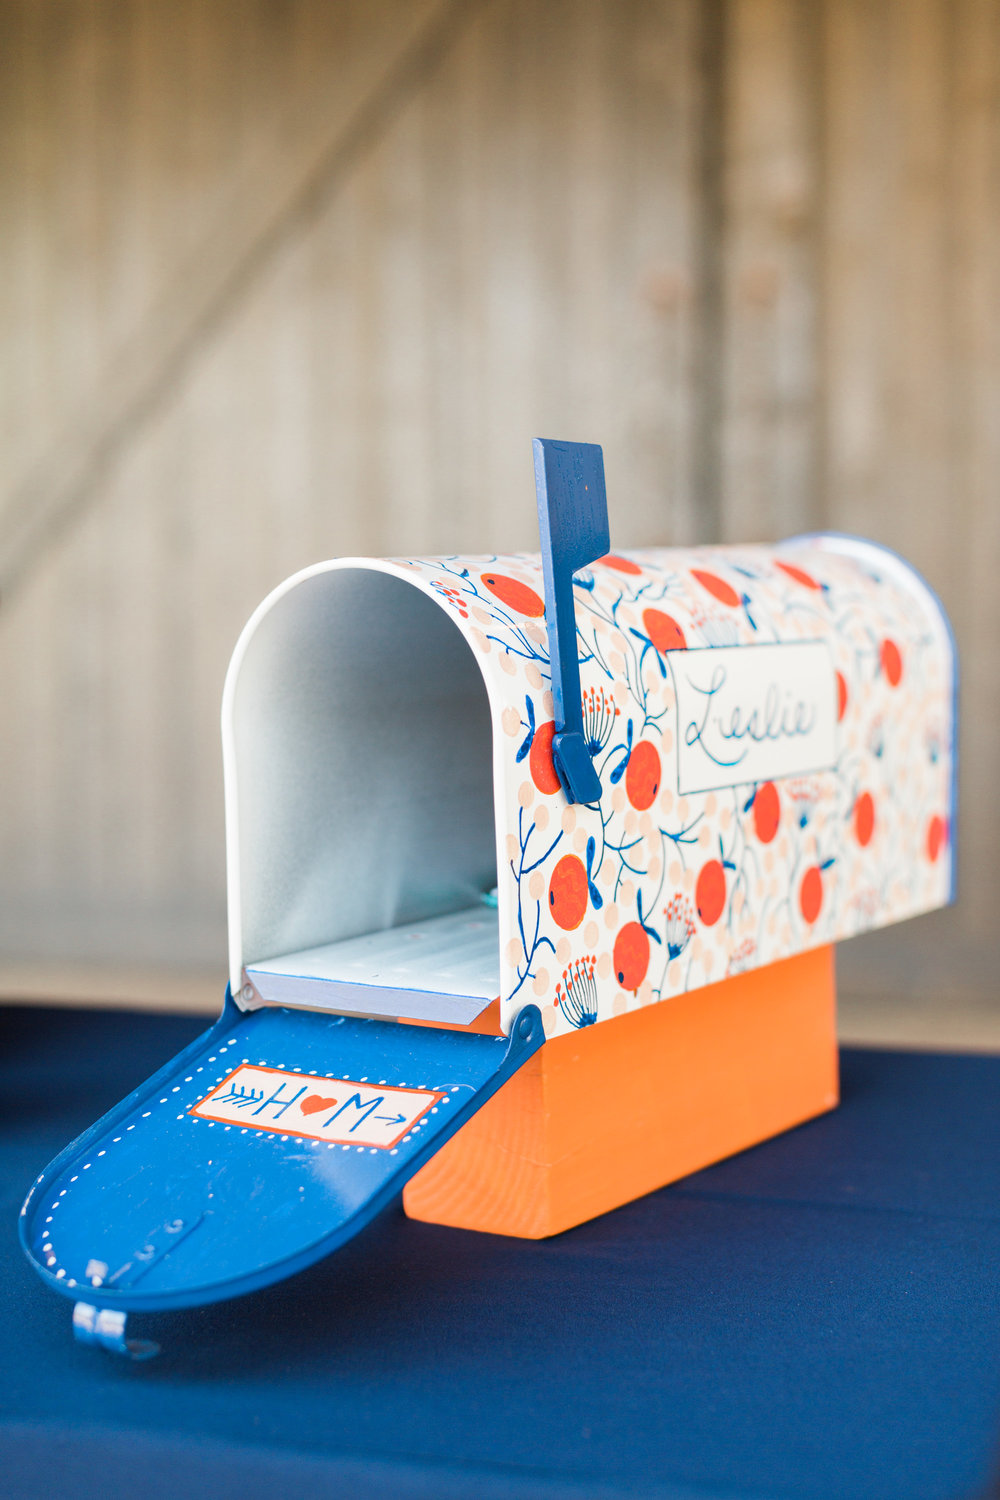 Cute mailbox card holder that matches the wedding decor with their new last name on it! Love this idea.